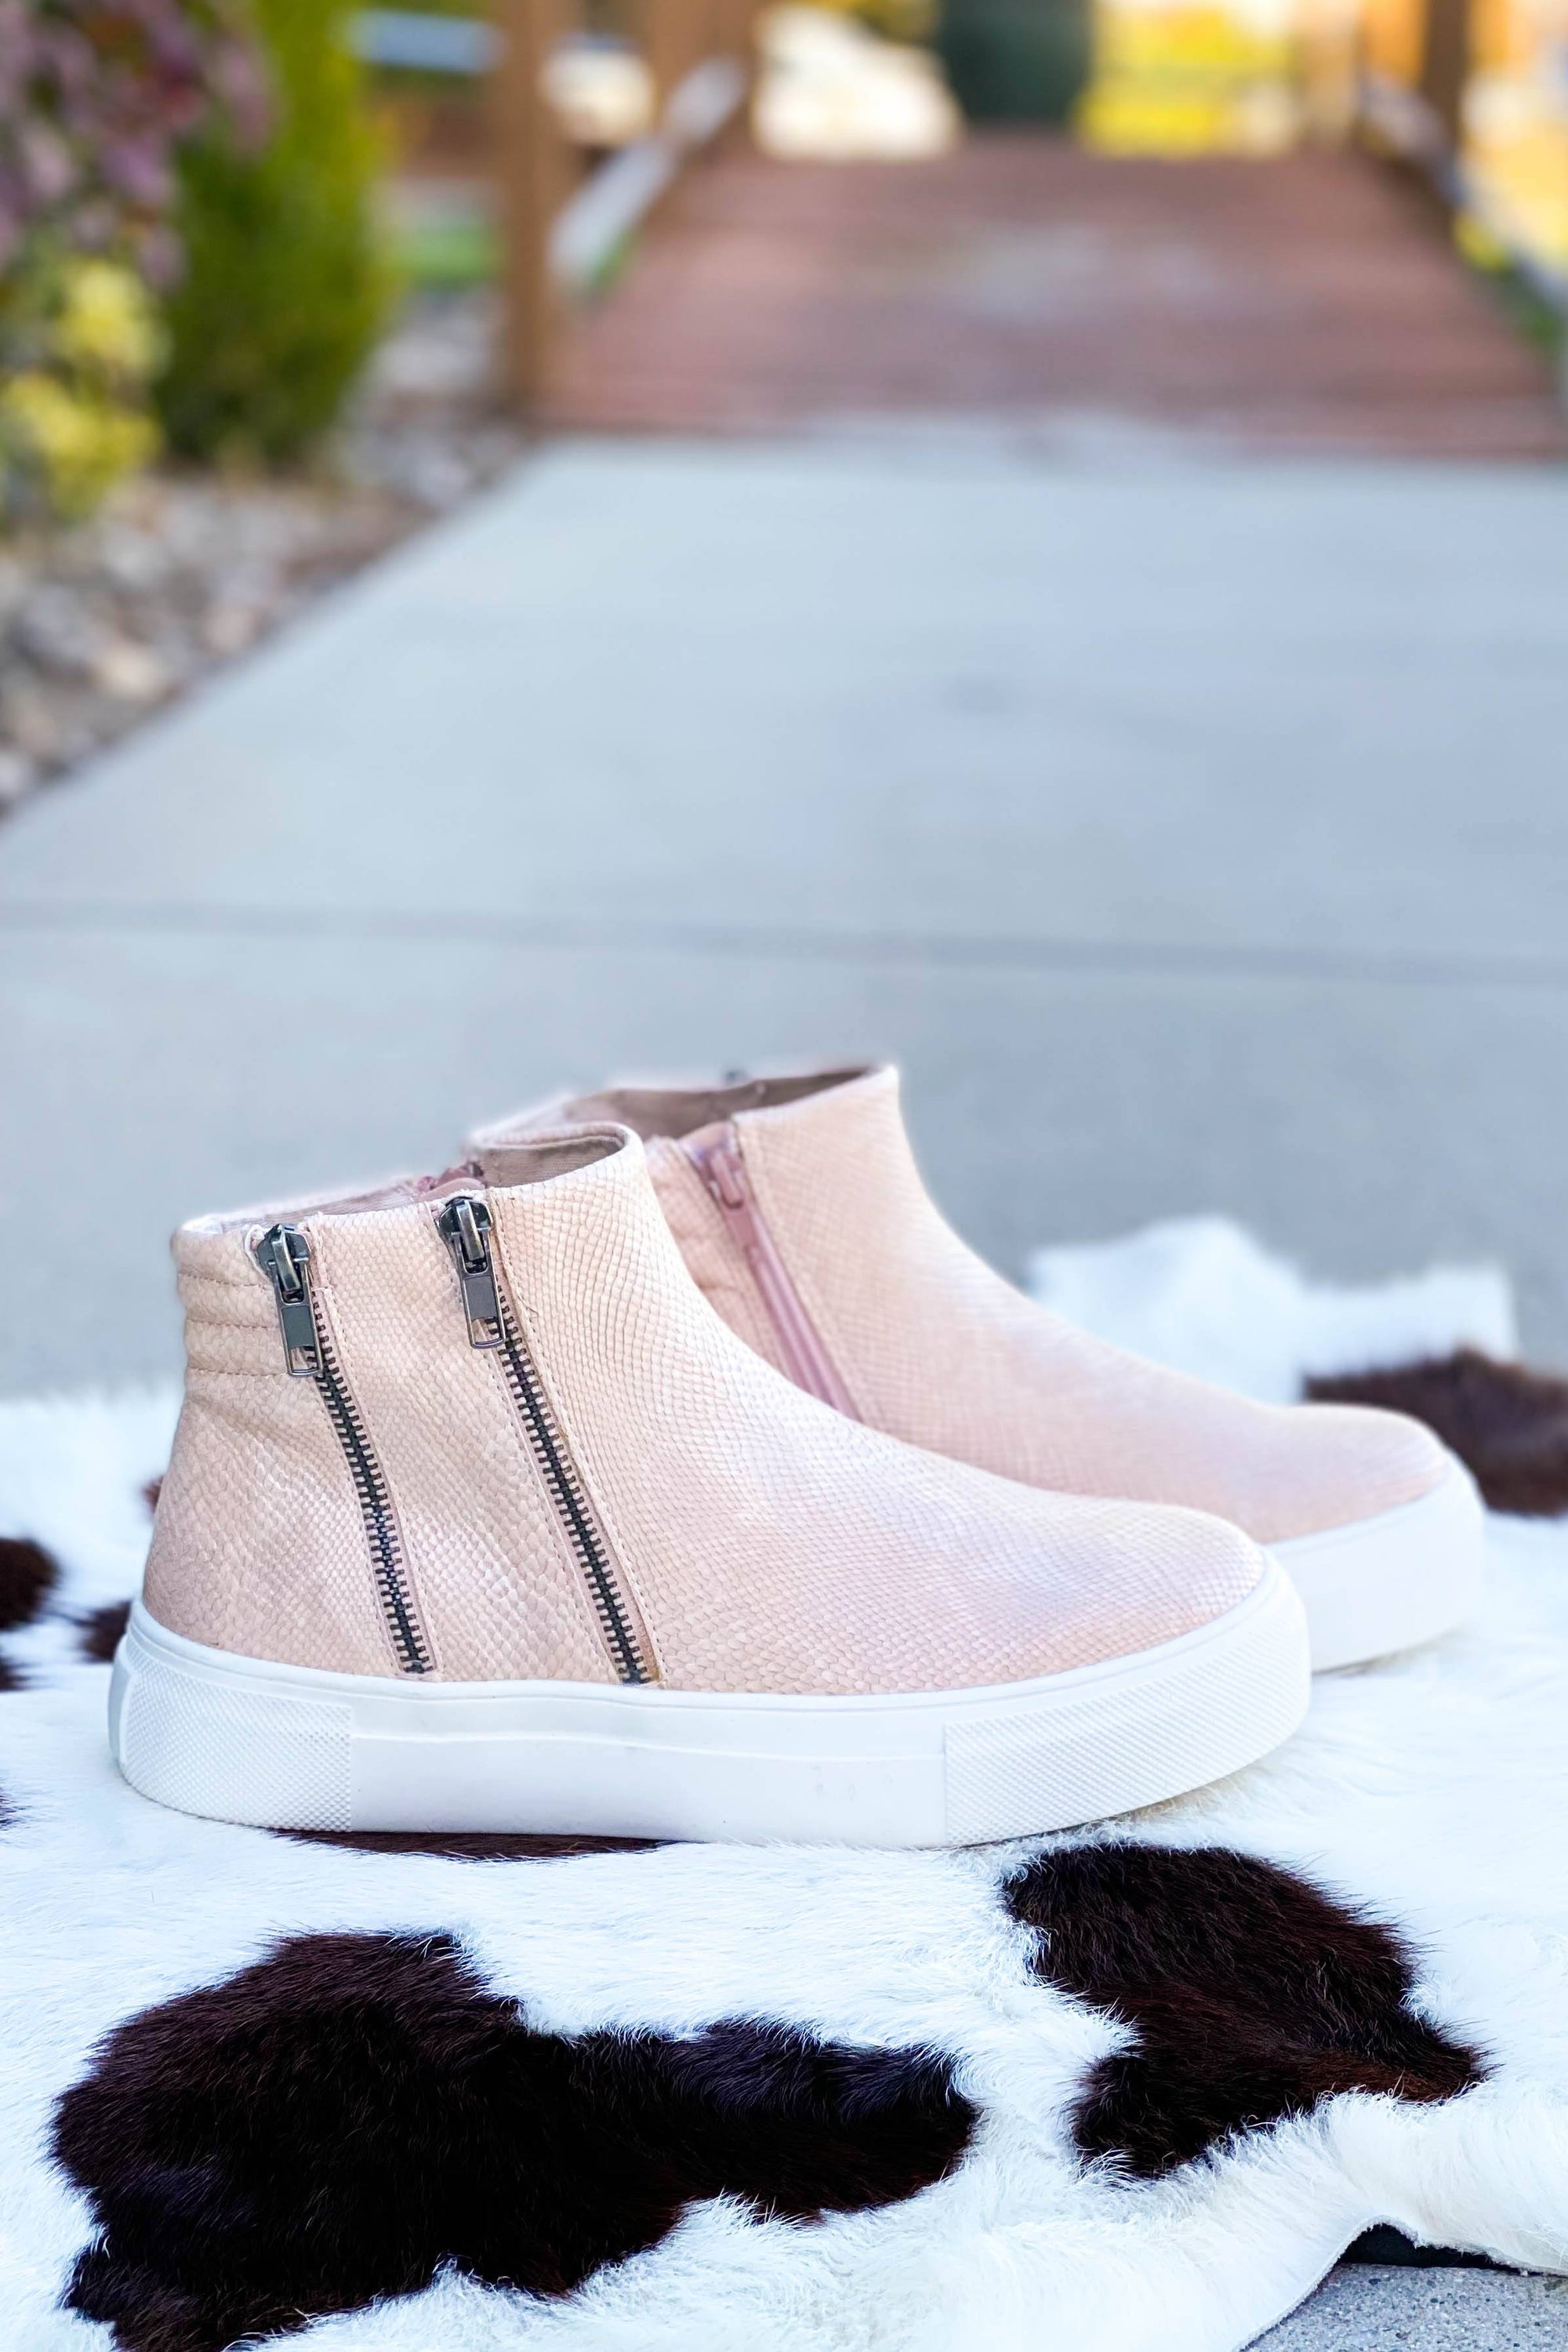 Matisse Dawson Sneaker Wedge in Pink-[option4]-[option5]-[option6]-[option7]-[option8]-Womens-Clothing-Shop